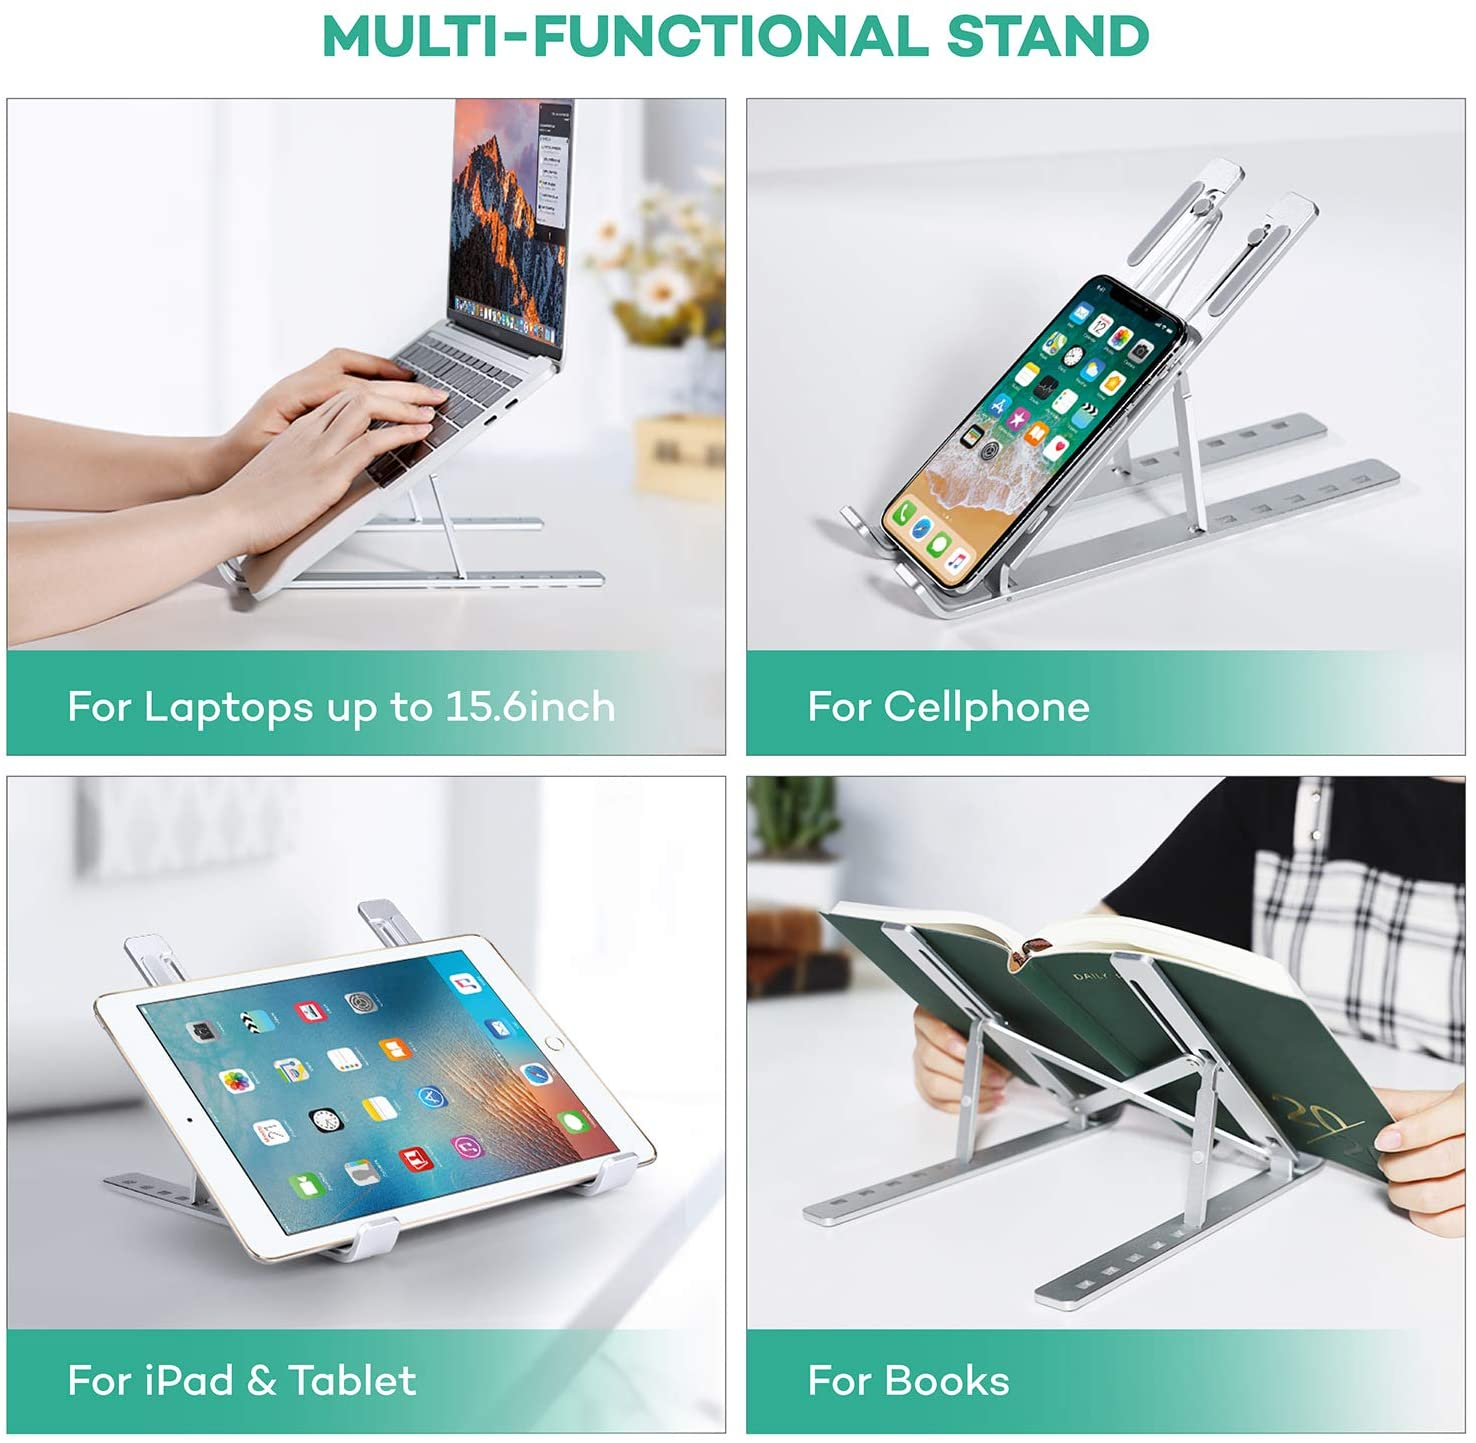 Laptop Stand Portable 6 Heights Adjustable Aluminum Desktop Ventilated Cooling Holder Folding Ultra for MacBook up to 15.6 inch